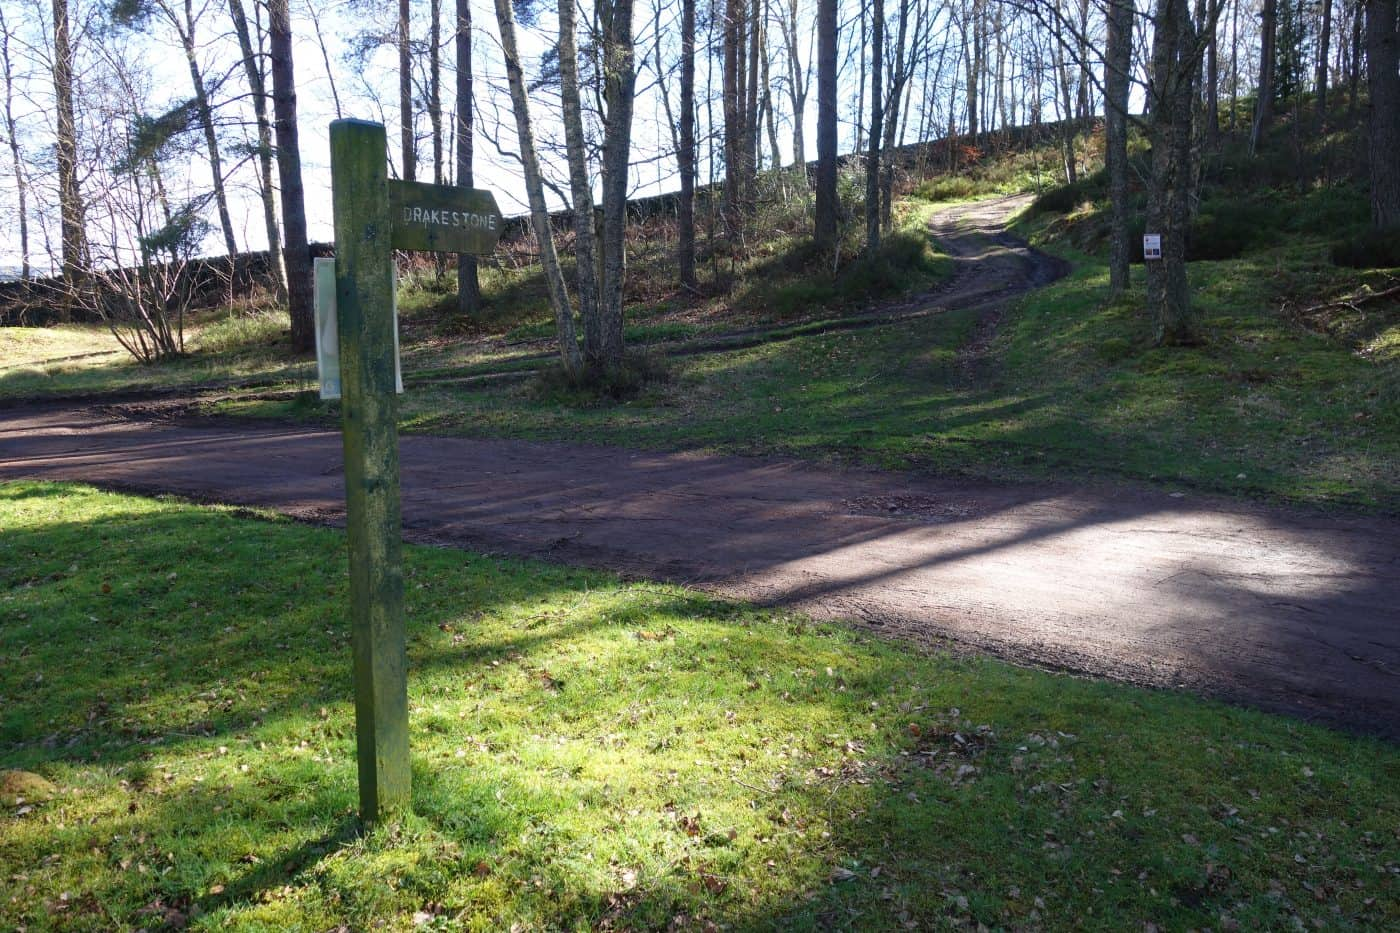 Harbottle forest leading to The Drake Stone in Northumberland - Karen's Kottages holiday cottage